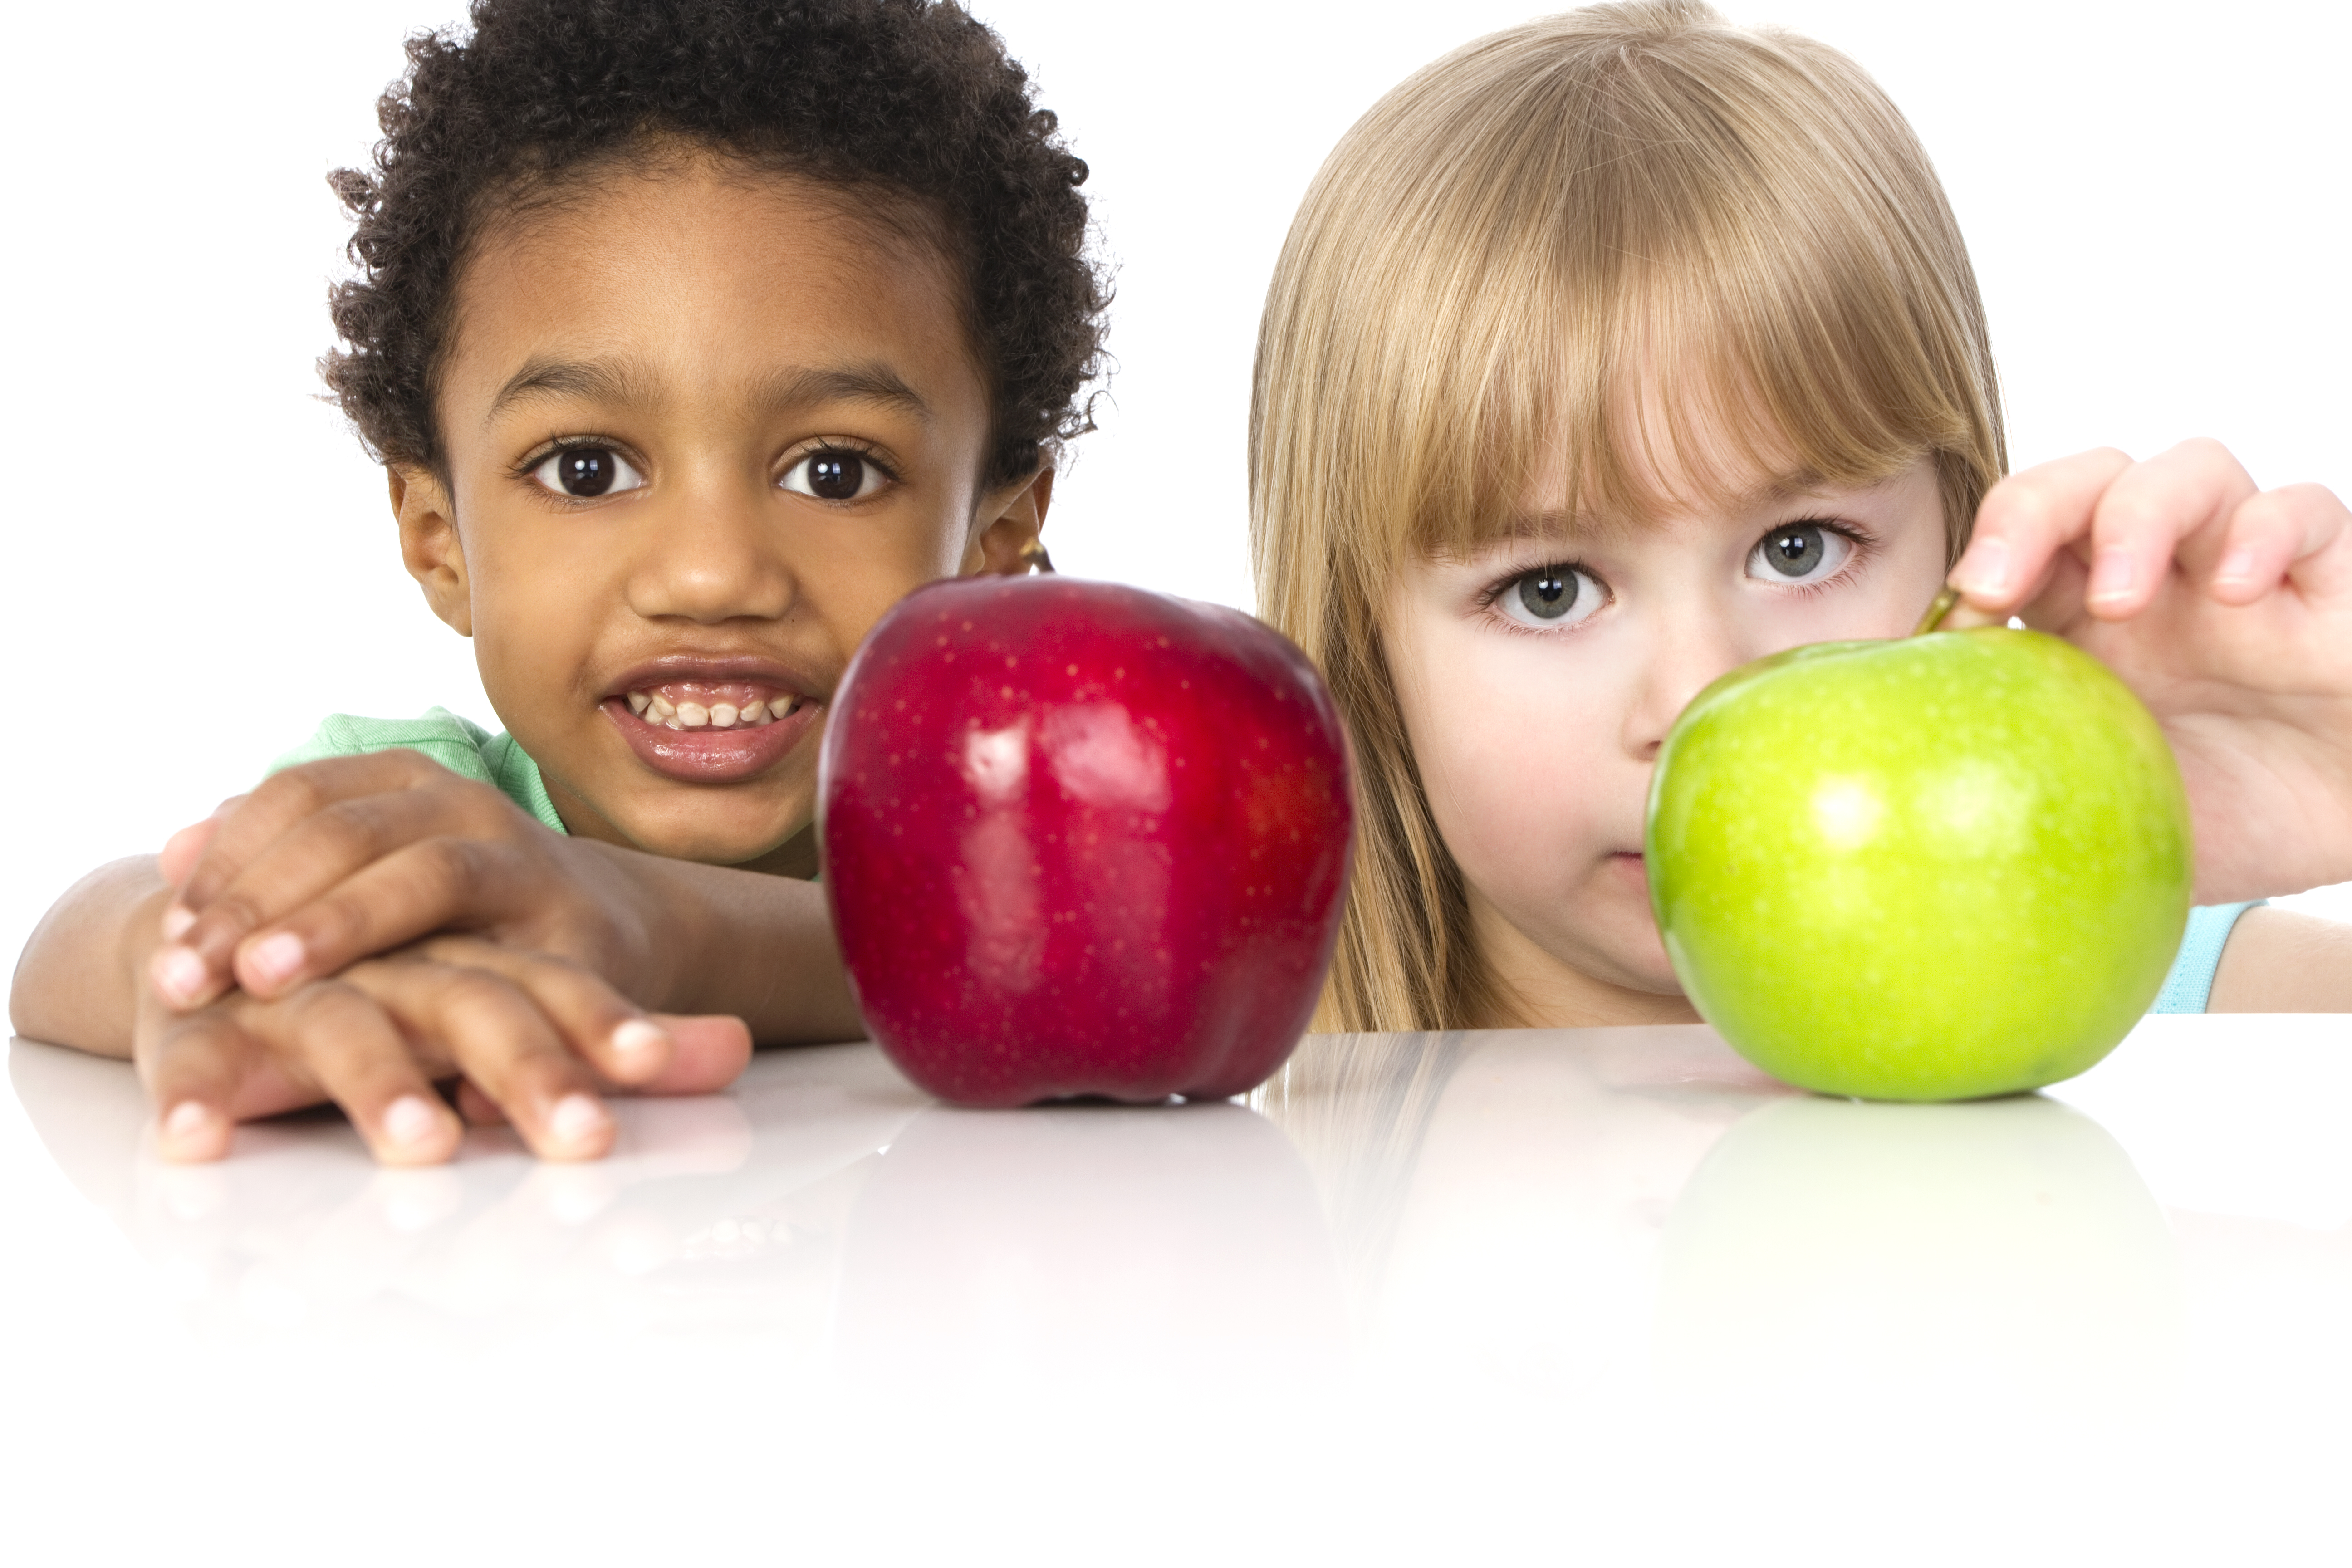 TV Food Advertising Affects Preschoolers' Snacking Habits